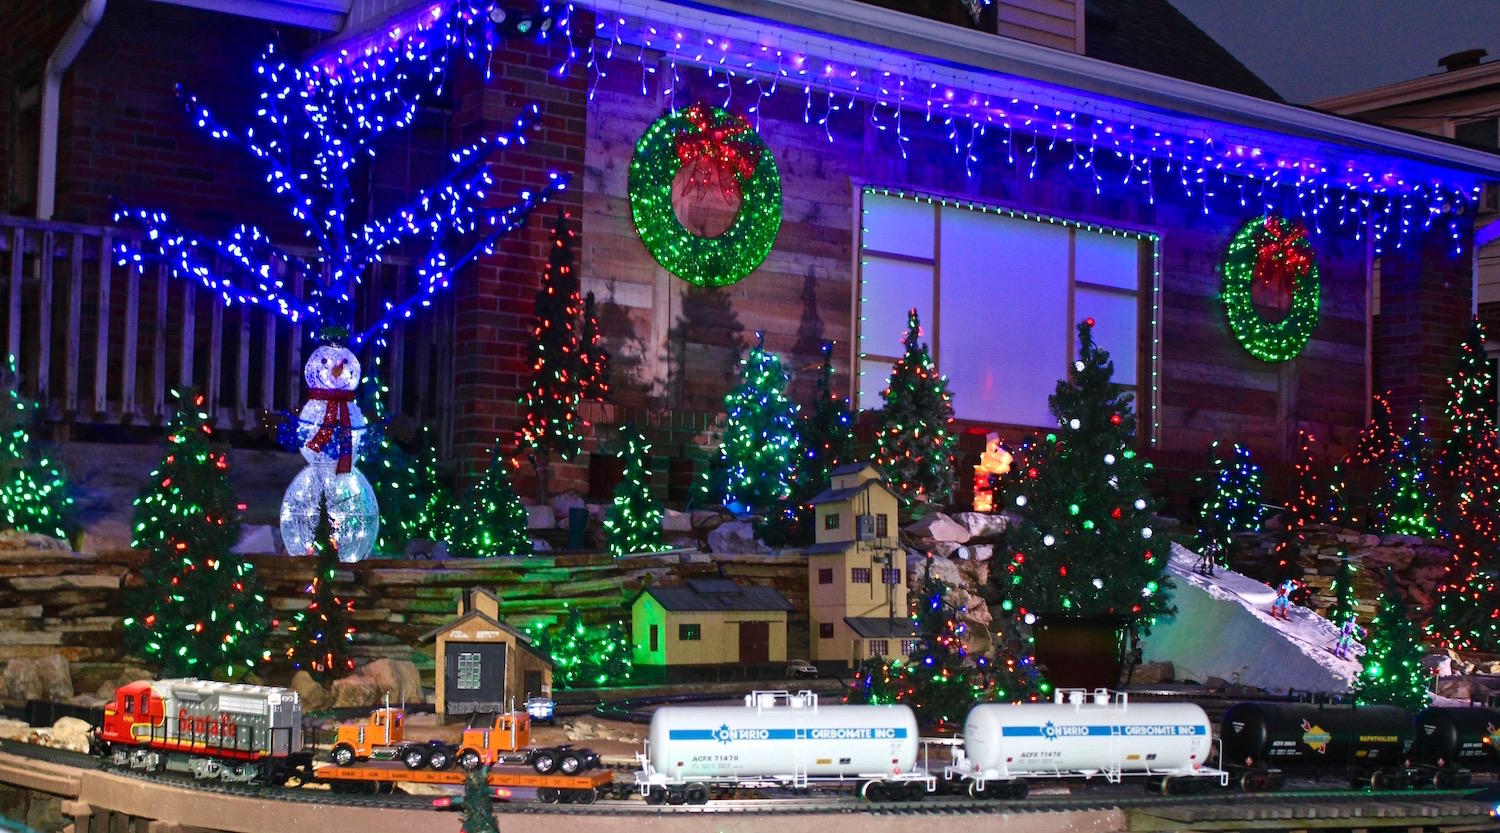 For local fans of model trains, the holiday season arrives by steam ...